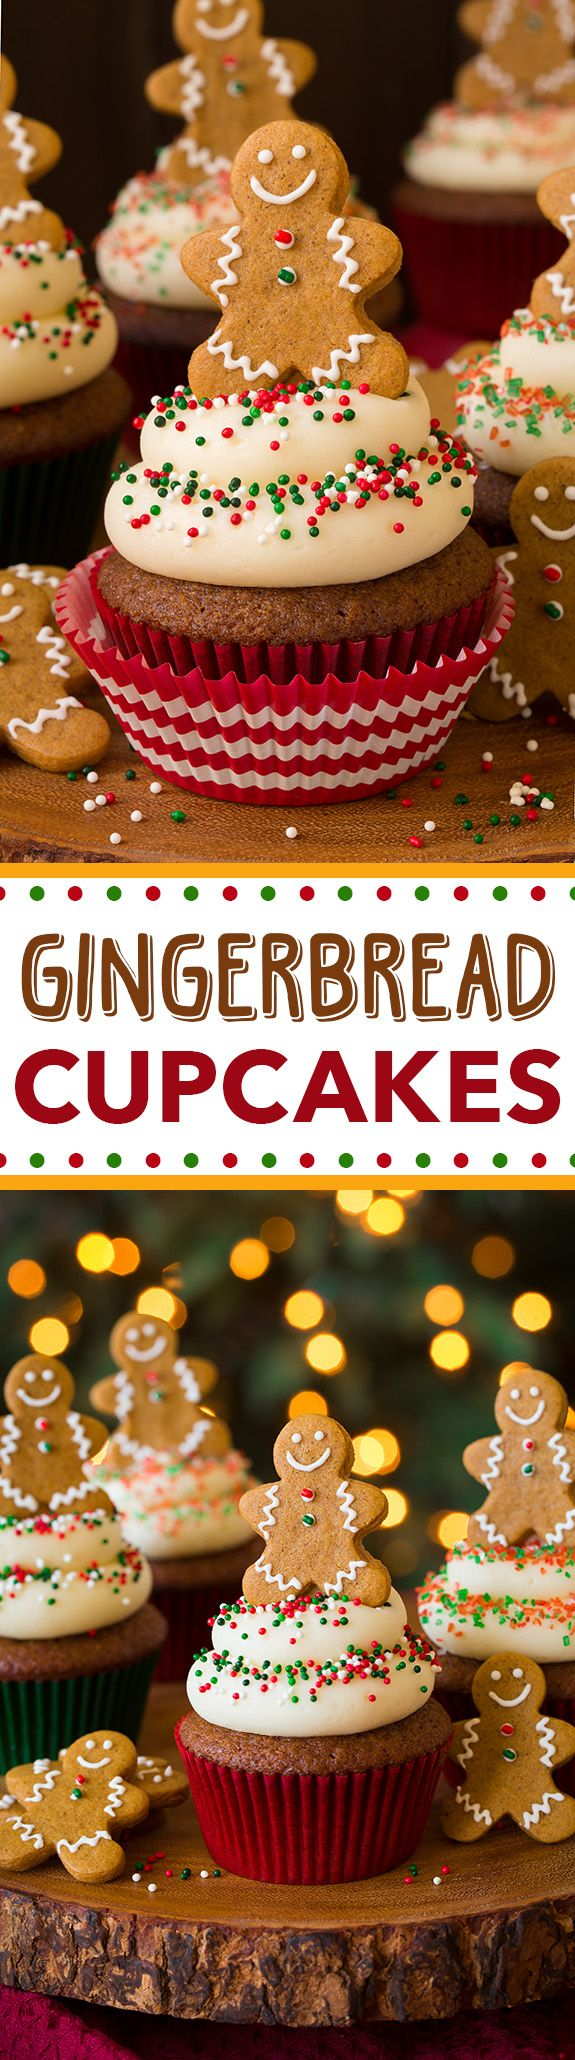 Gingerbread Cupcakes with Cream Cheese Frosting - such a fun cupcake for the holidays! Perfect amount of gingerbread flavor! More